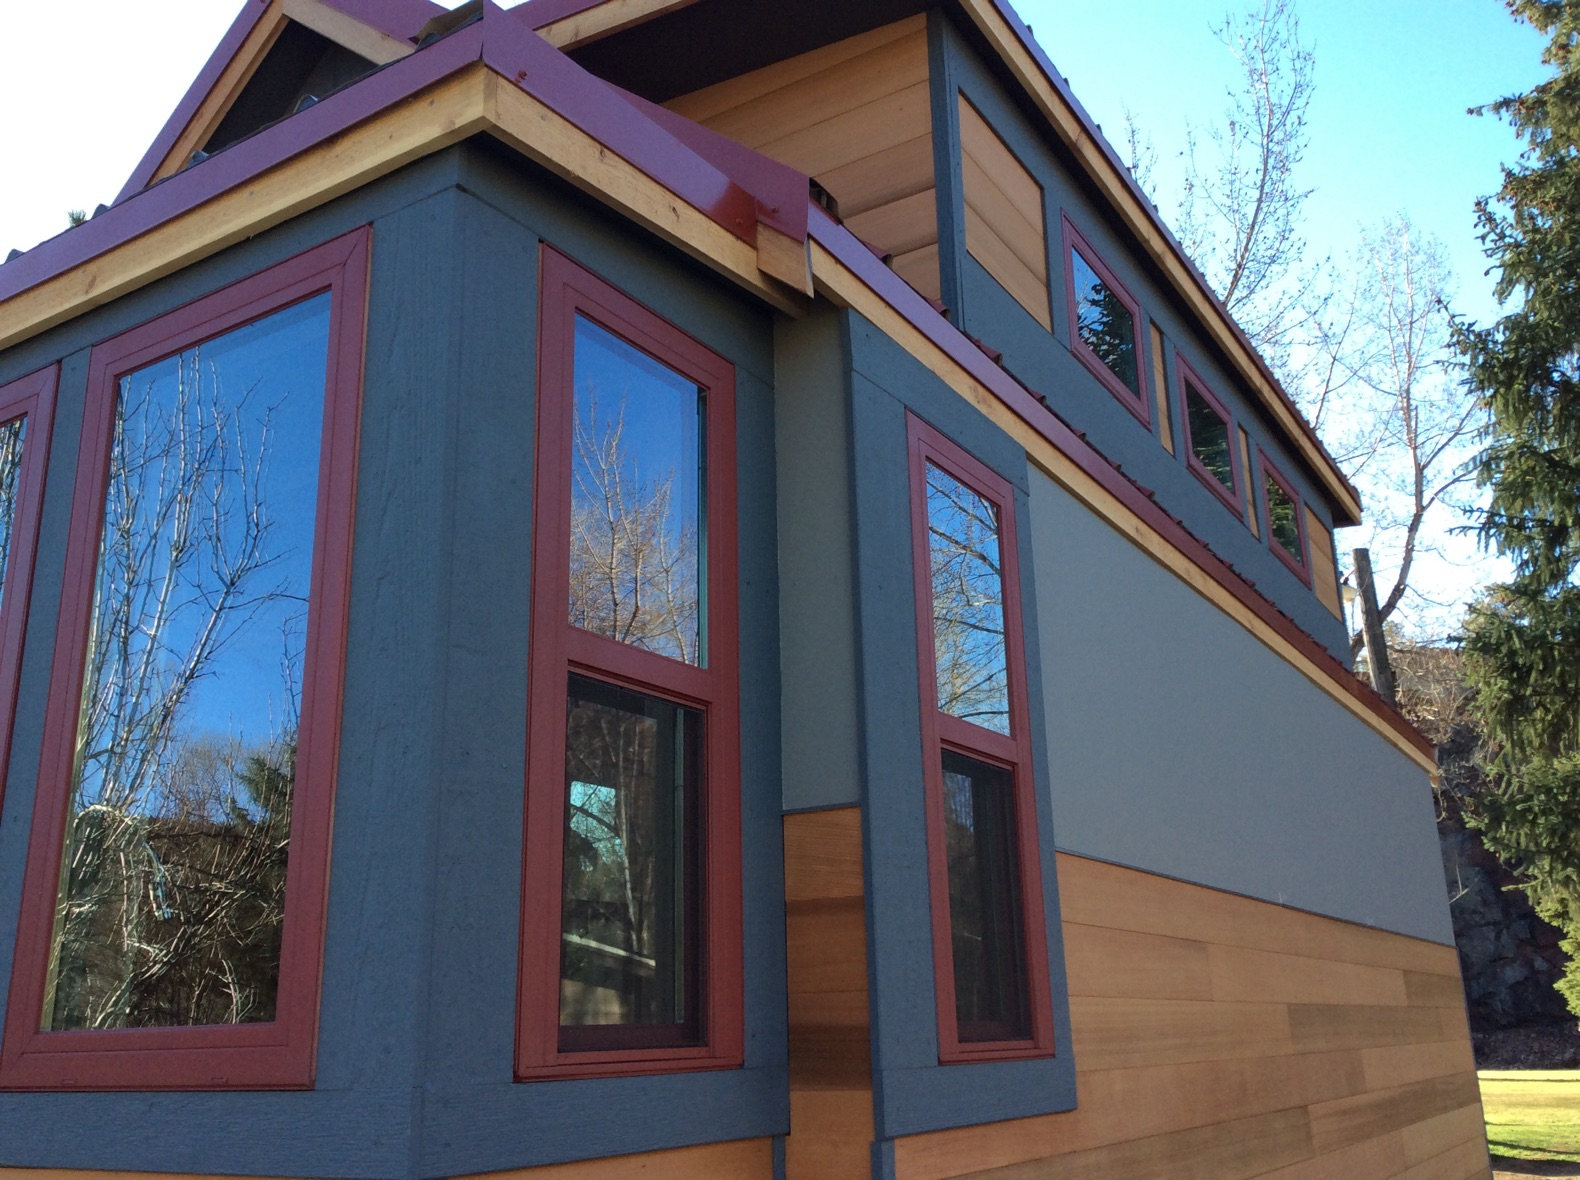 Tiny Homes, Tiny Houses, Affordable Housing, Social Housing, Sprout Tiny  Homes,